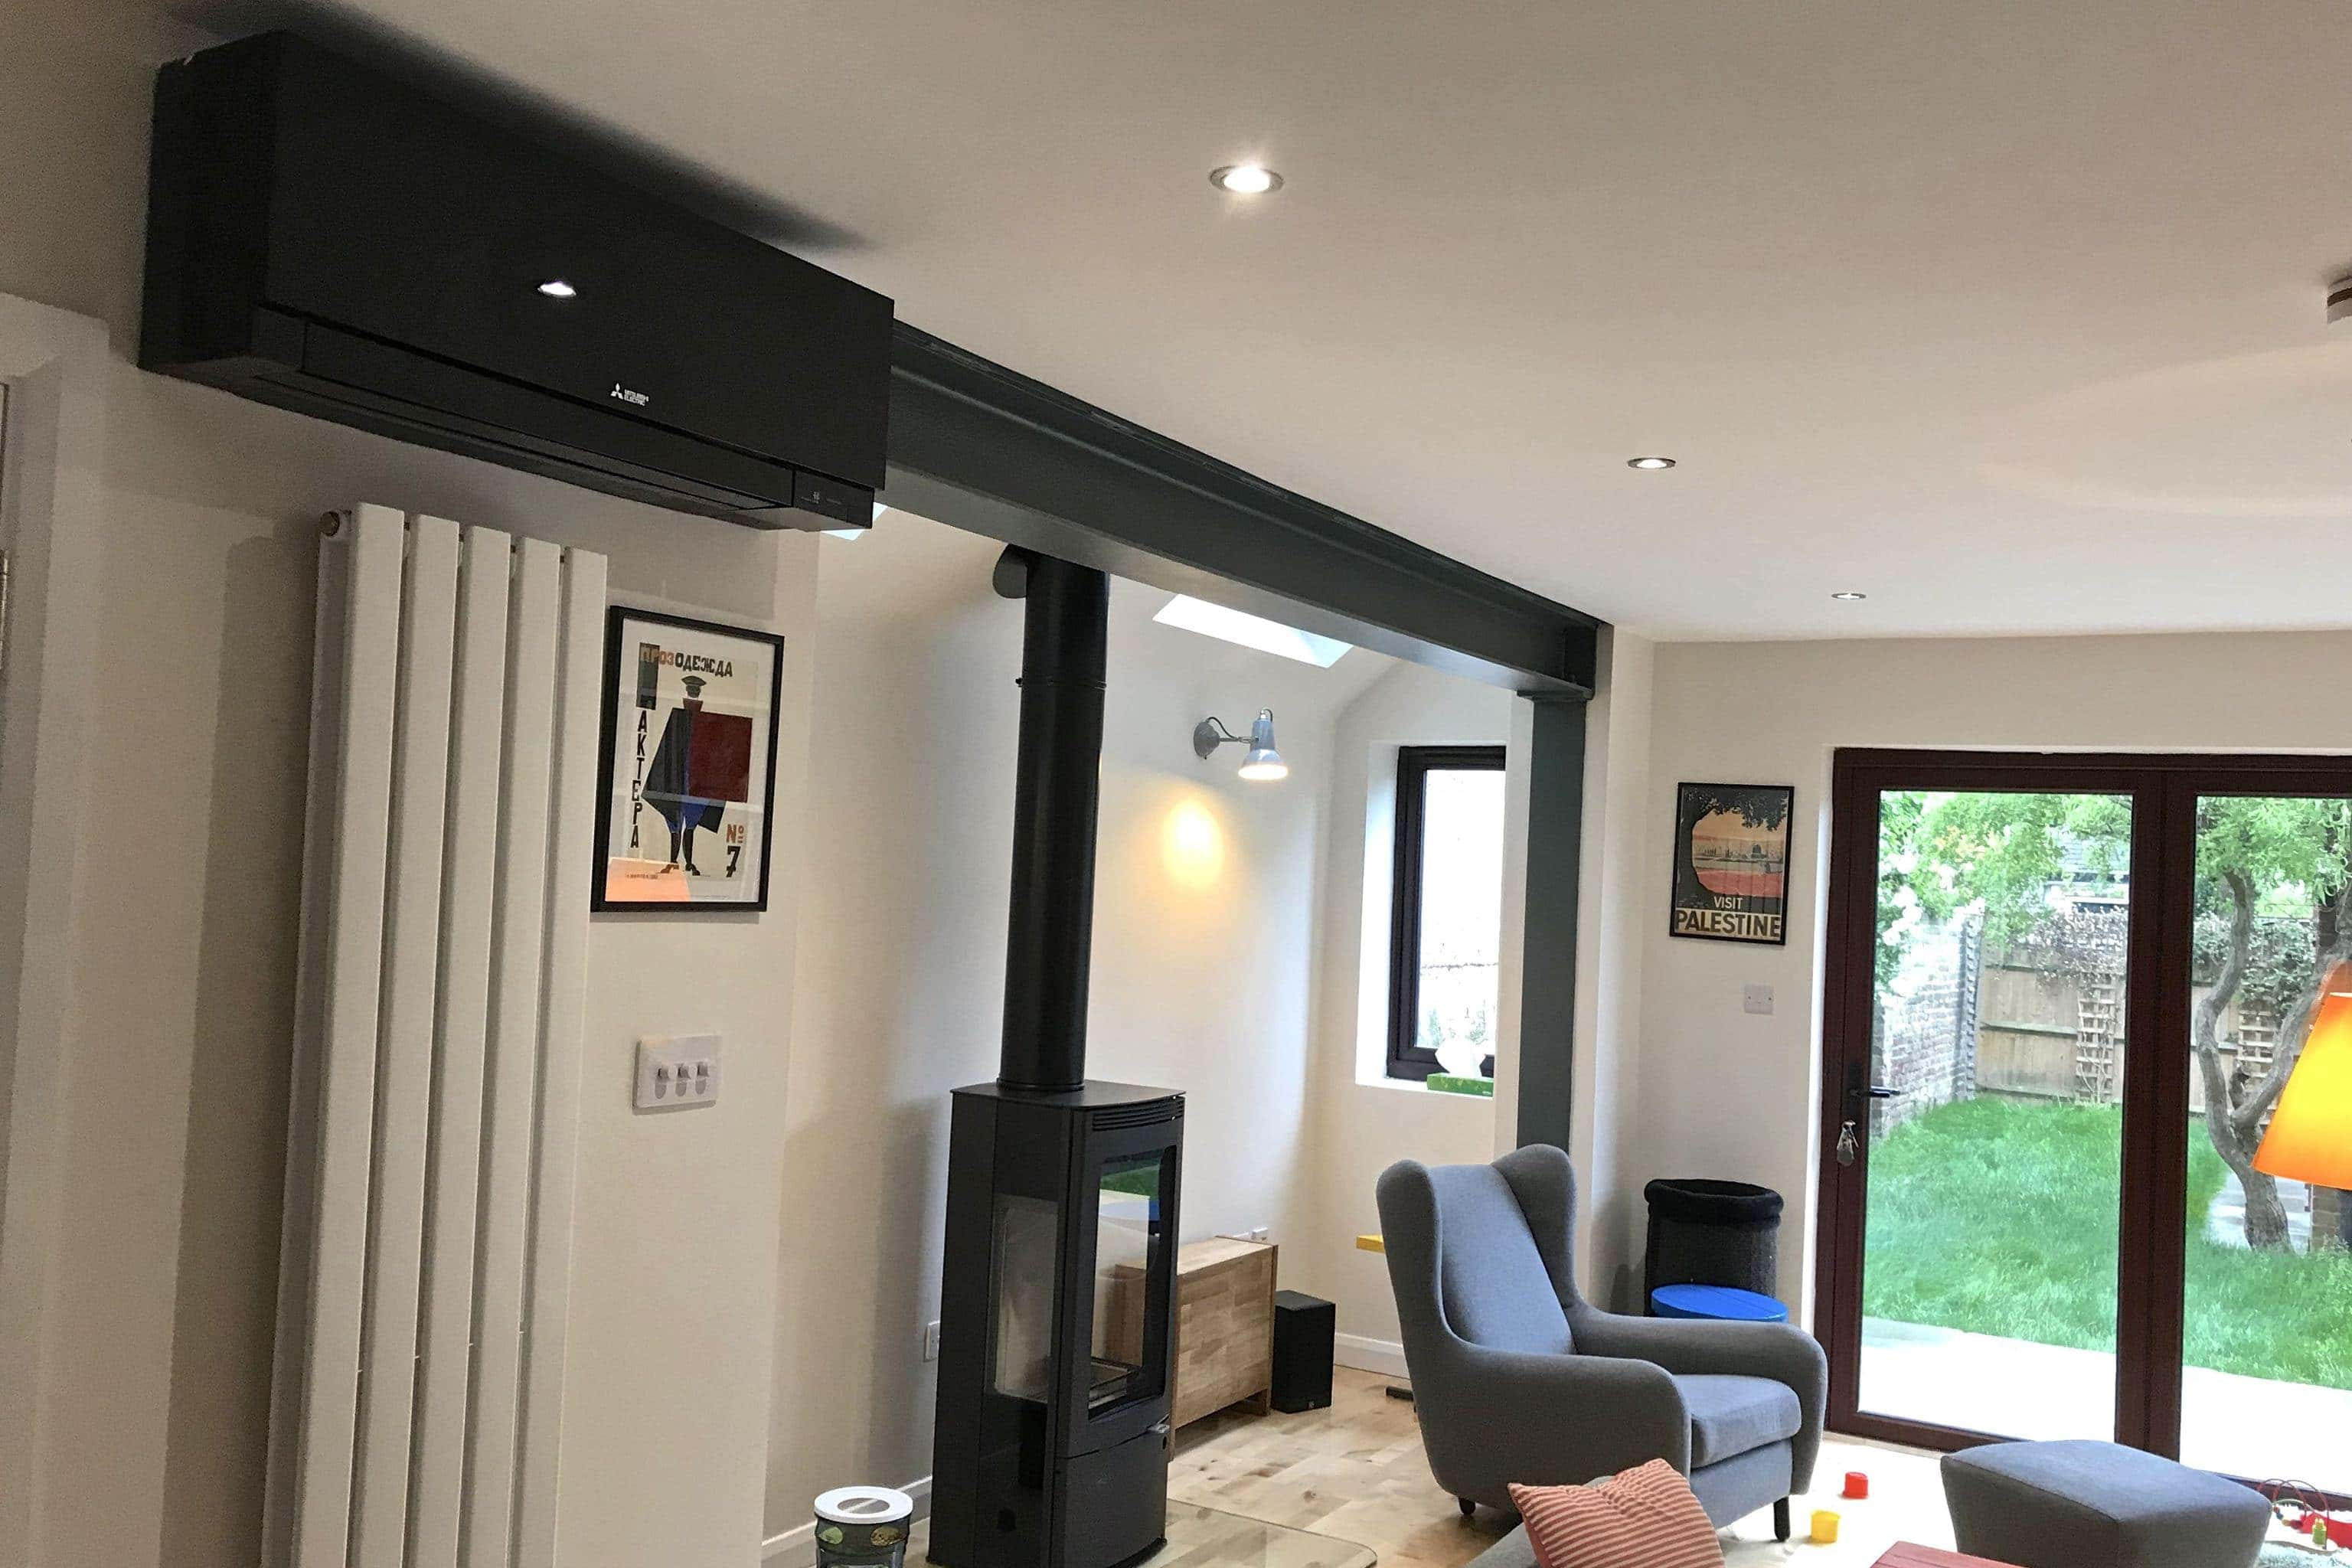 black wall mounted Mitsubishi Electric domestic air conditioning unit in living room